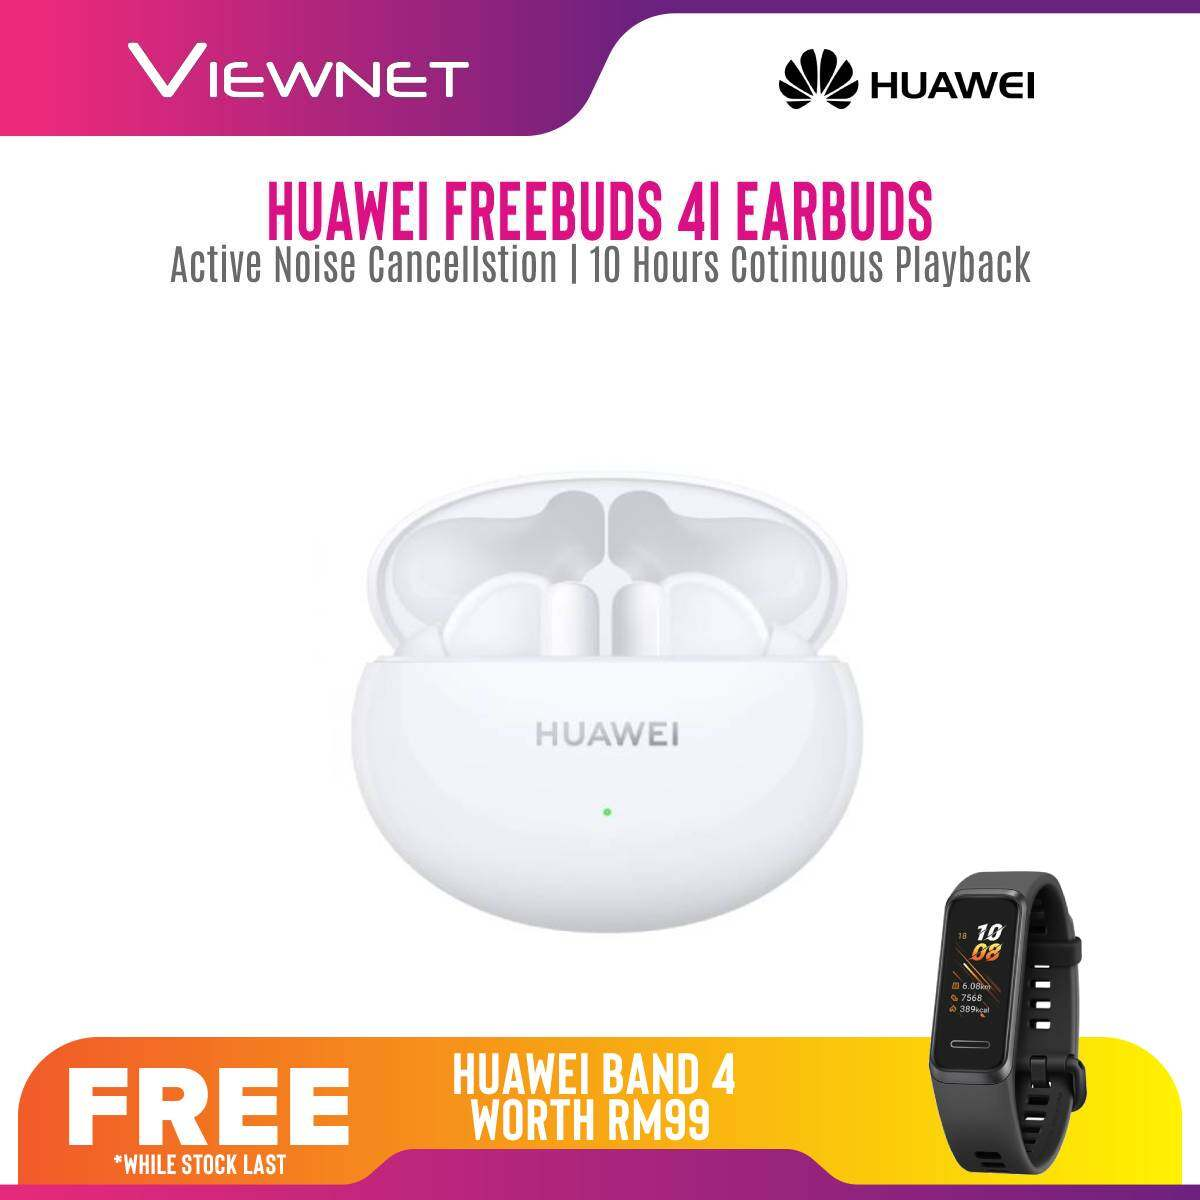 Huawei Freebuds 4I wireless Earbubs / Earphone with Active Noise Cancellation , 10 Hours Continuous Playback